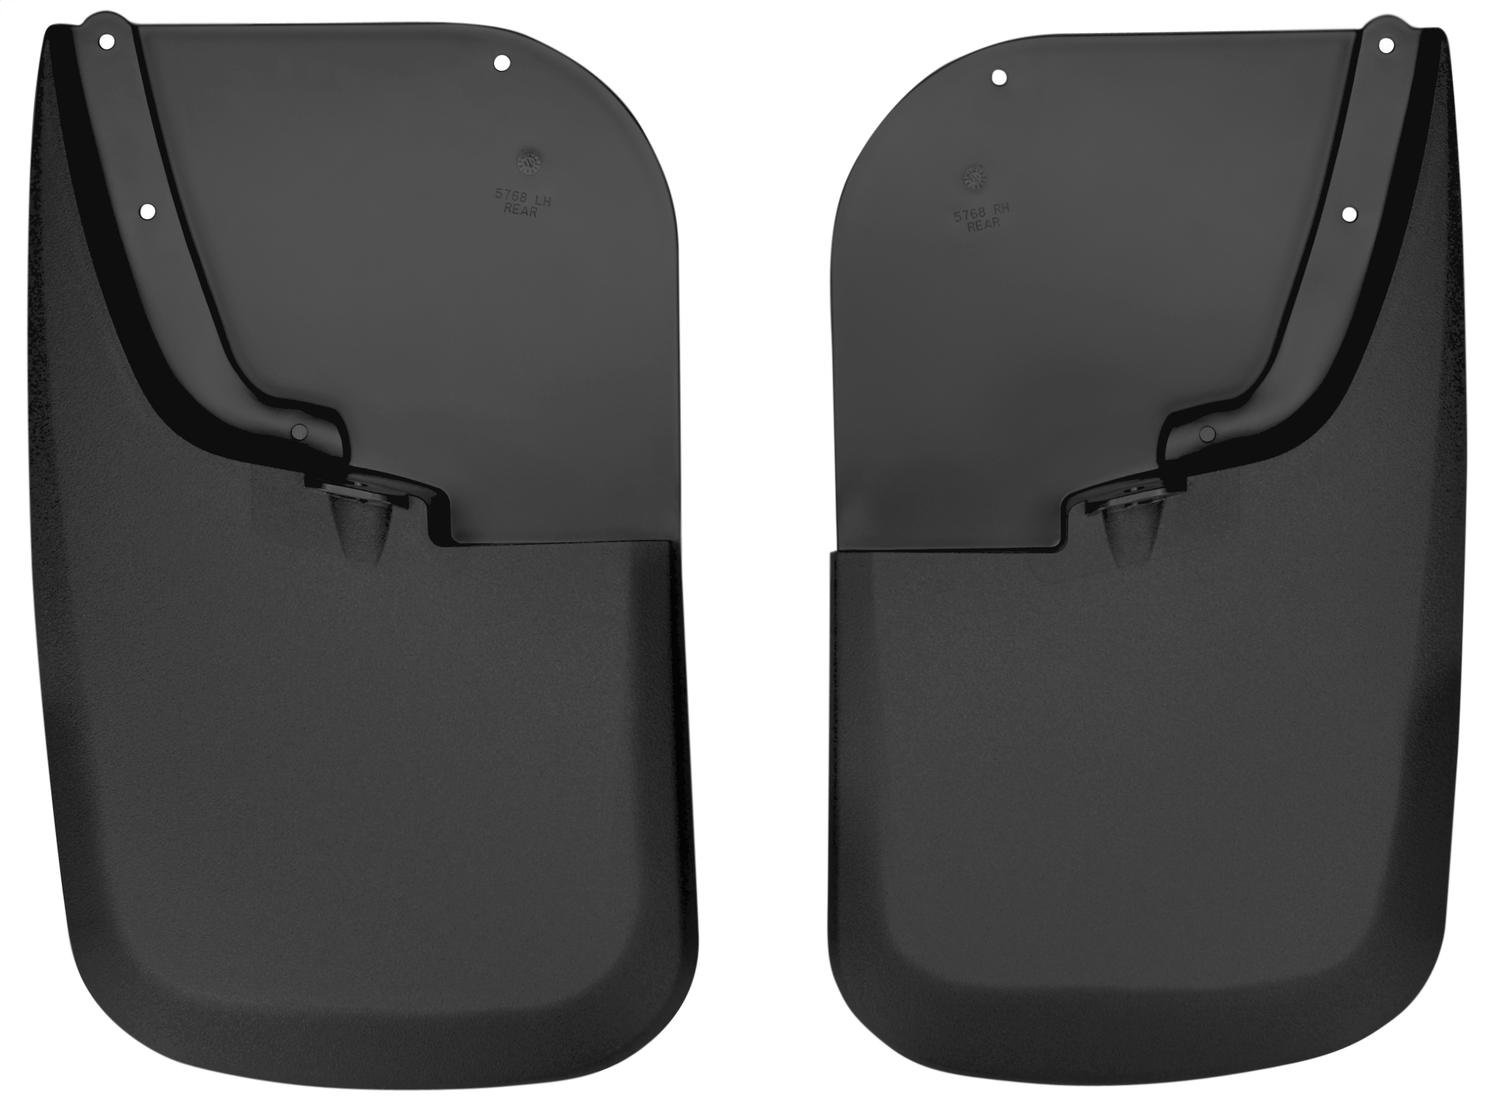 Husky Liners Custom Fit Molded Rear Mudguard for Select Ford F-250 /F-350 Models - Pack of 2 (Black) Winfield Consumer Products 57681